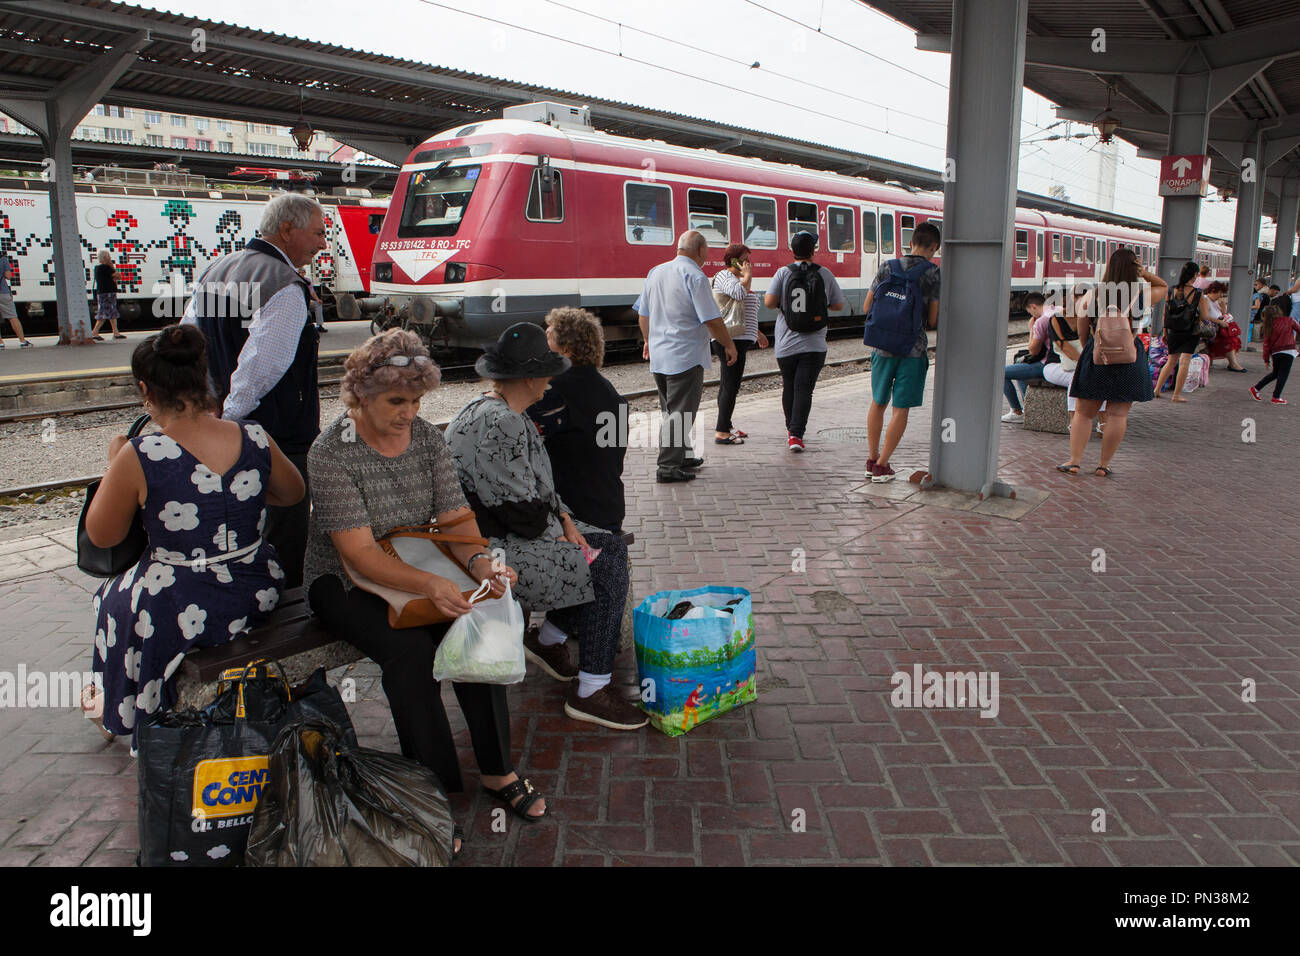 Passengers wait on the platform at Gara de Nord railway station in Bucharest, Romania - Stock Image